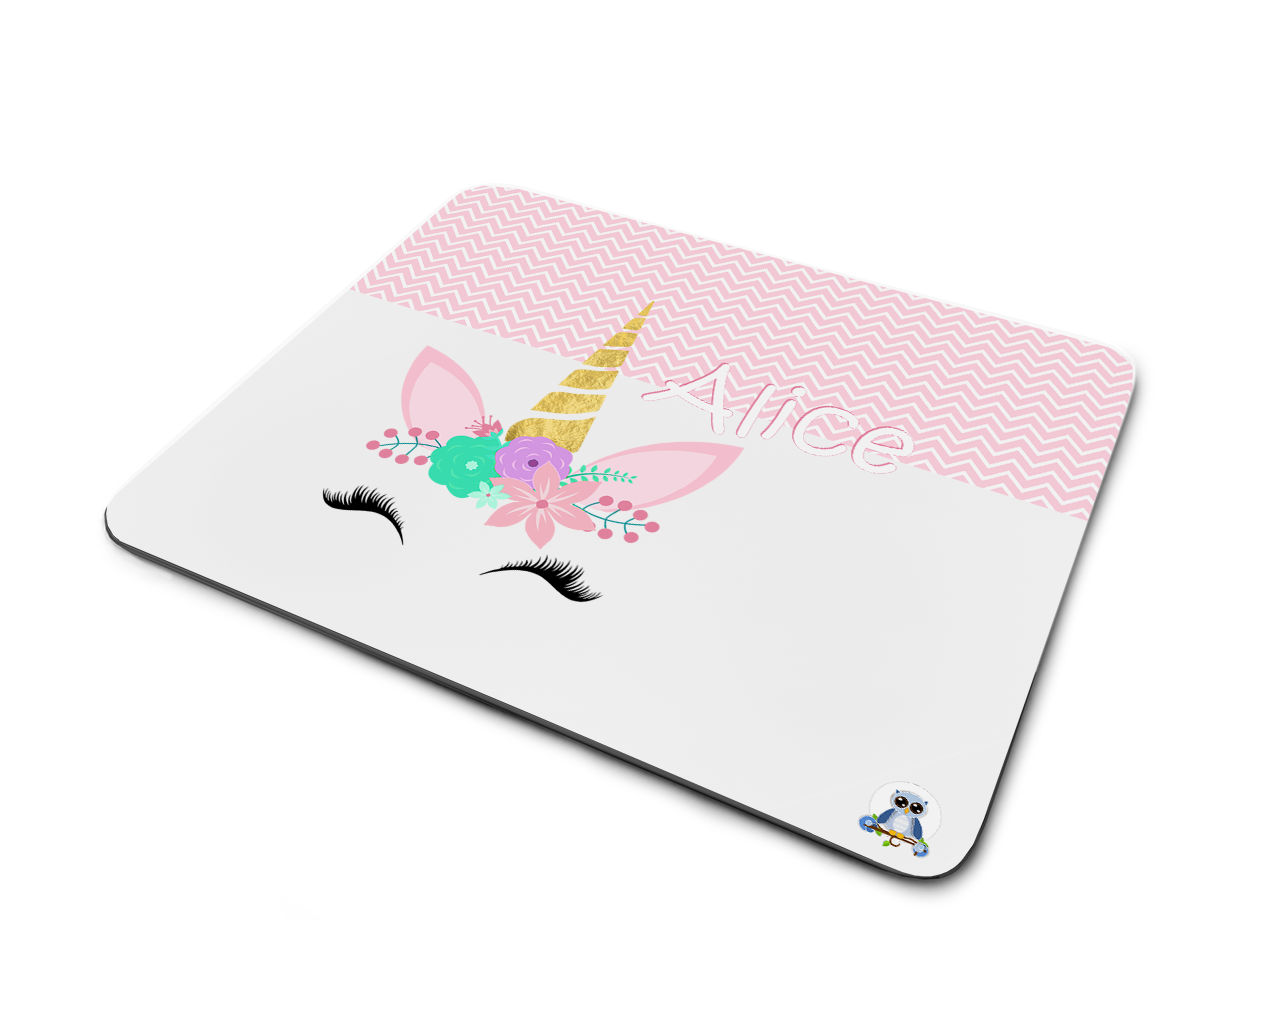 Personalizable Mouse Pad Office Decoration Cute Unicorn Head